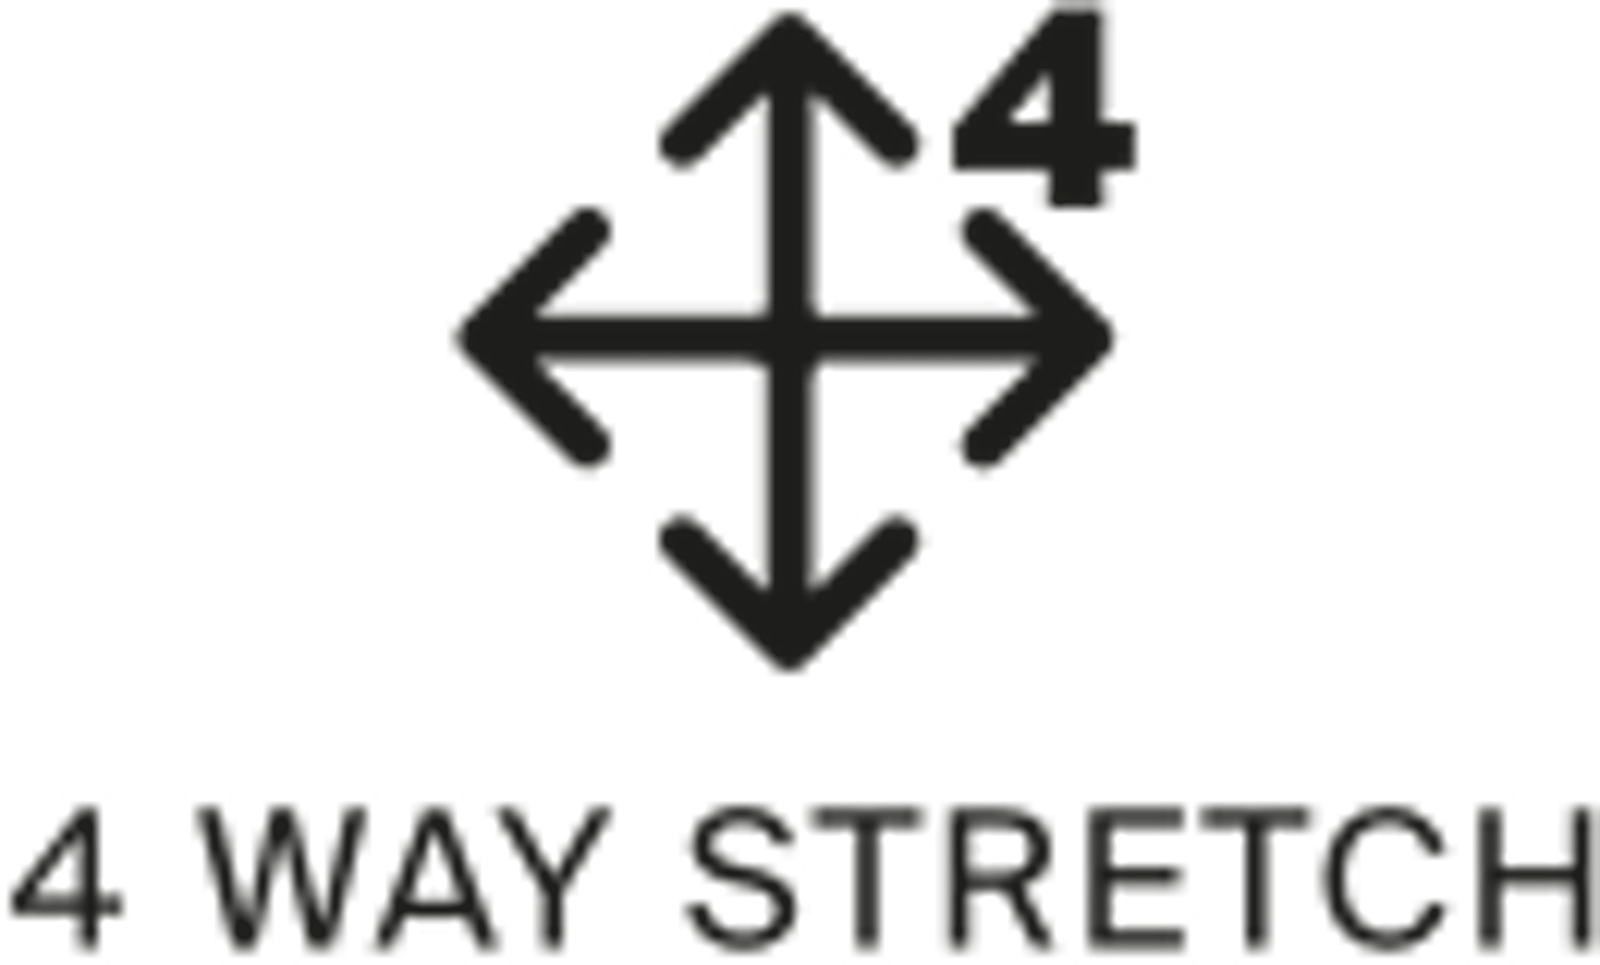 4-way stretch certification